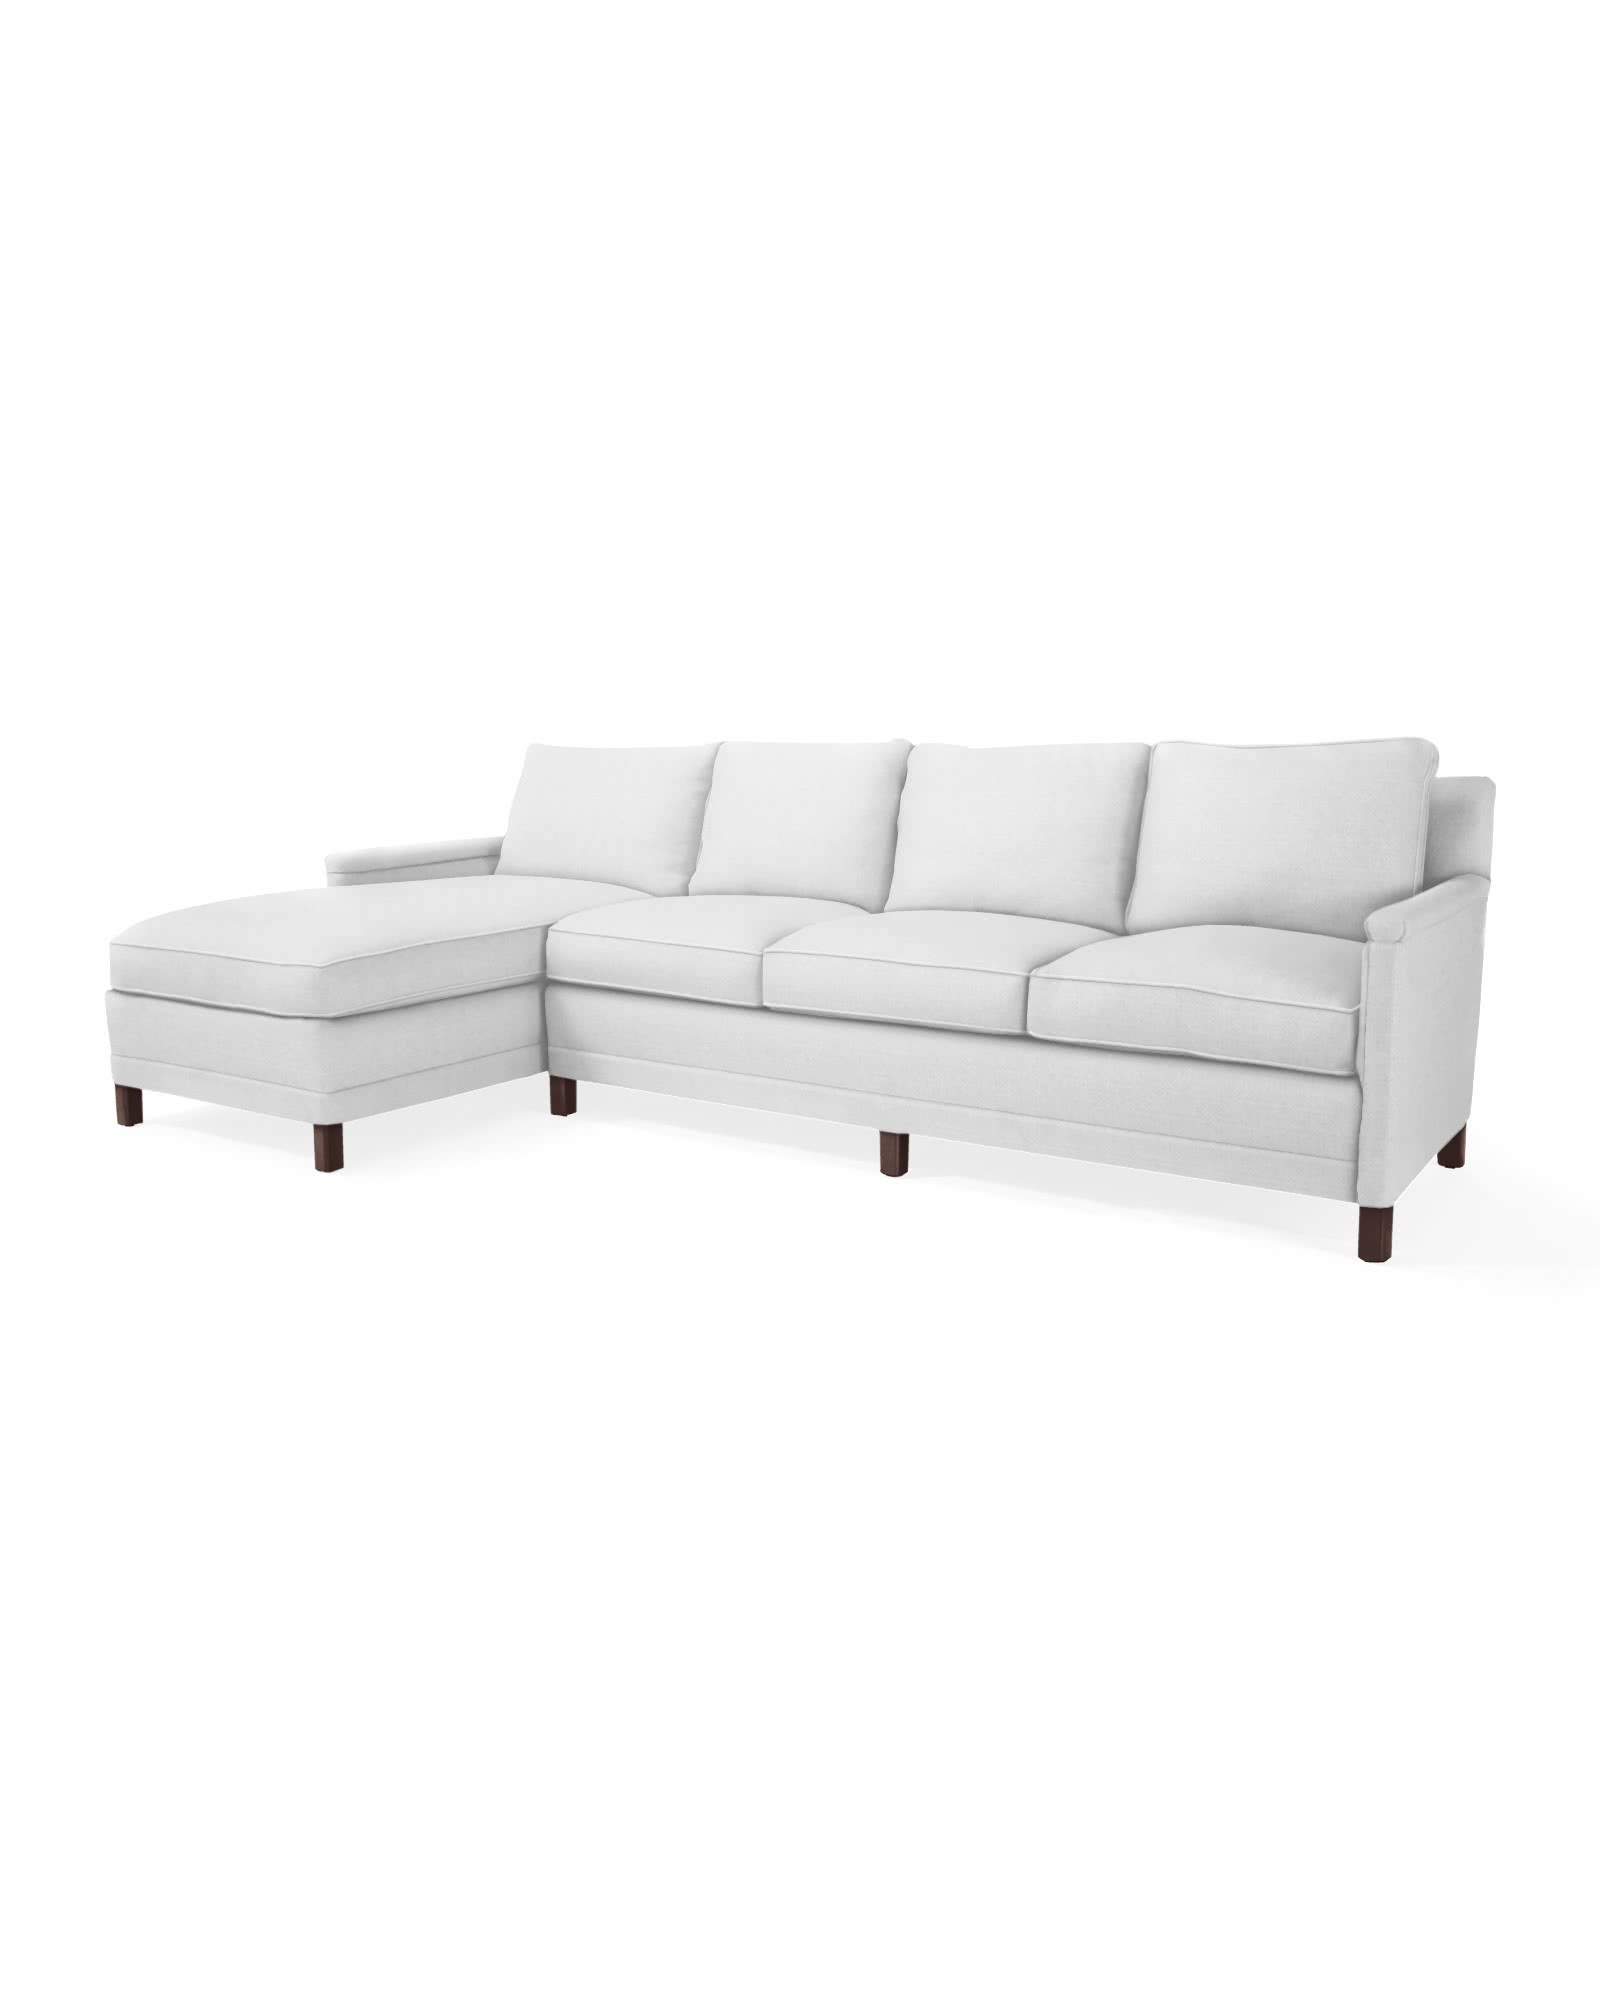 Spruce Street Left-Facing Chaise Sectional,